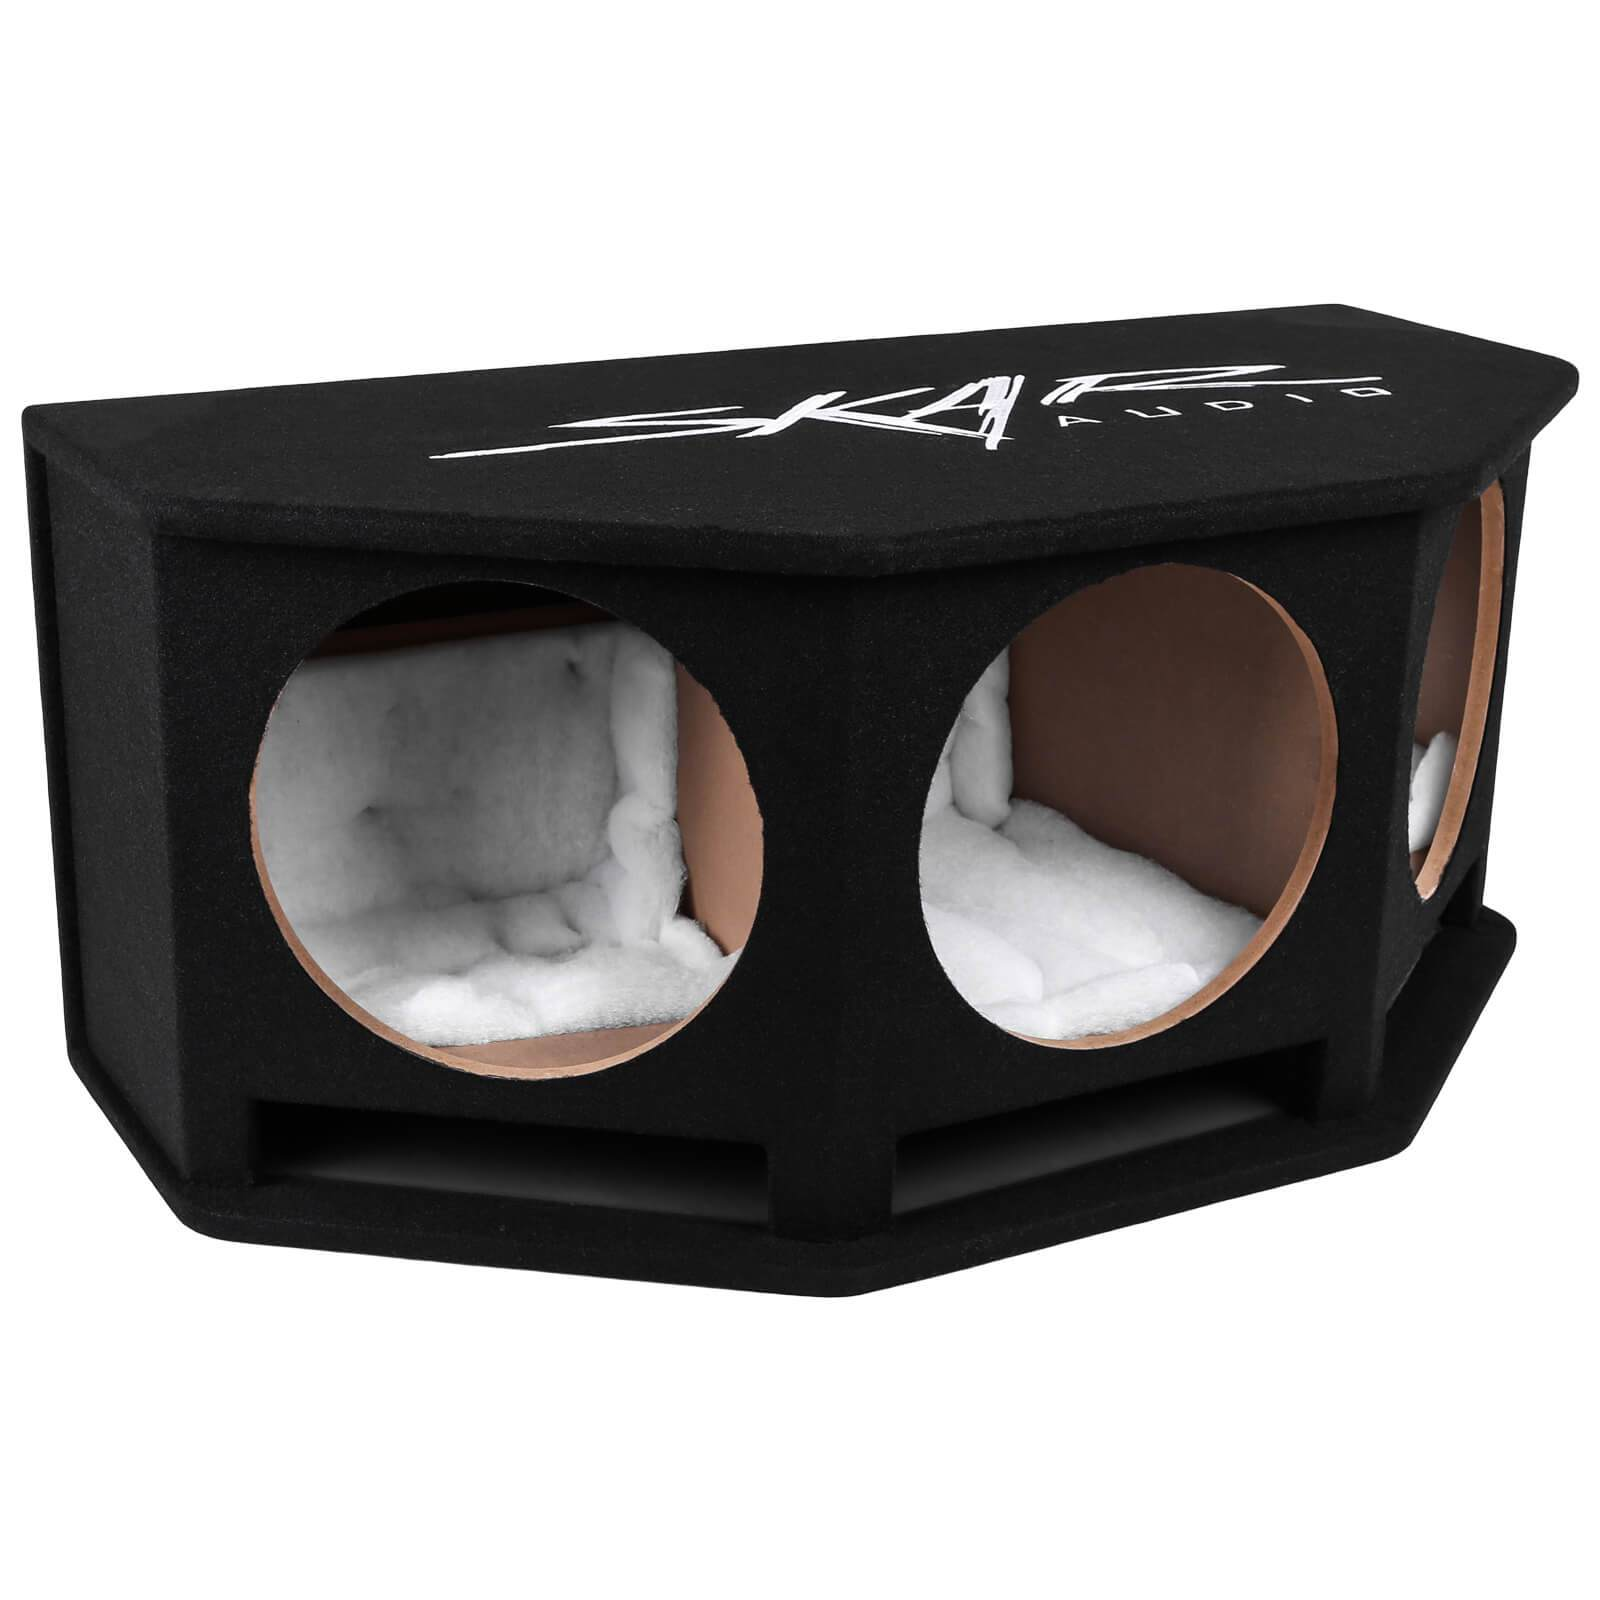 "Skar Audio SK3X12V Triple 12"" Ported Universal Fit Subwoofer Box - Main Image"